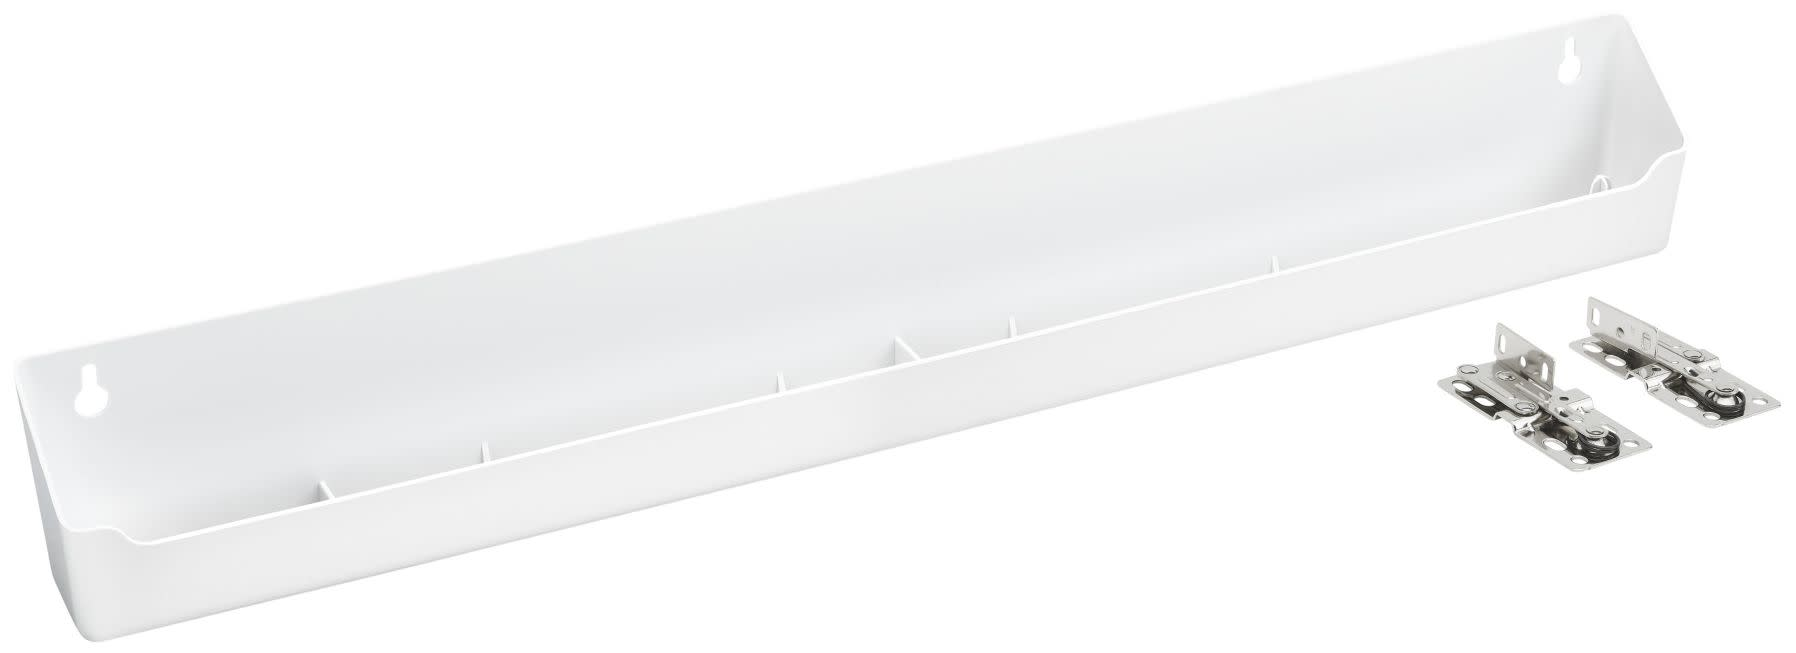 rev a shelf ld 6591 24 1 6591 series 24 deluxe sink front tip out tray